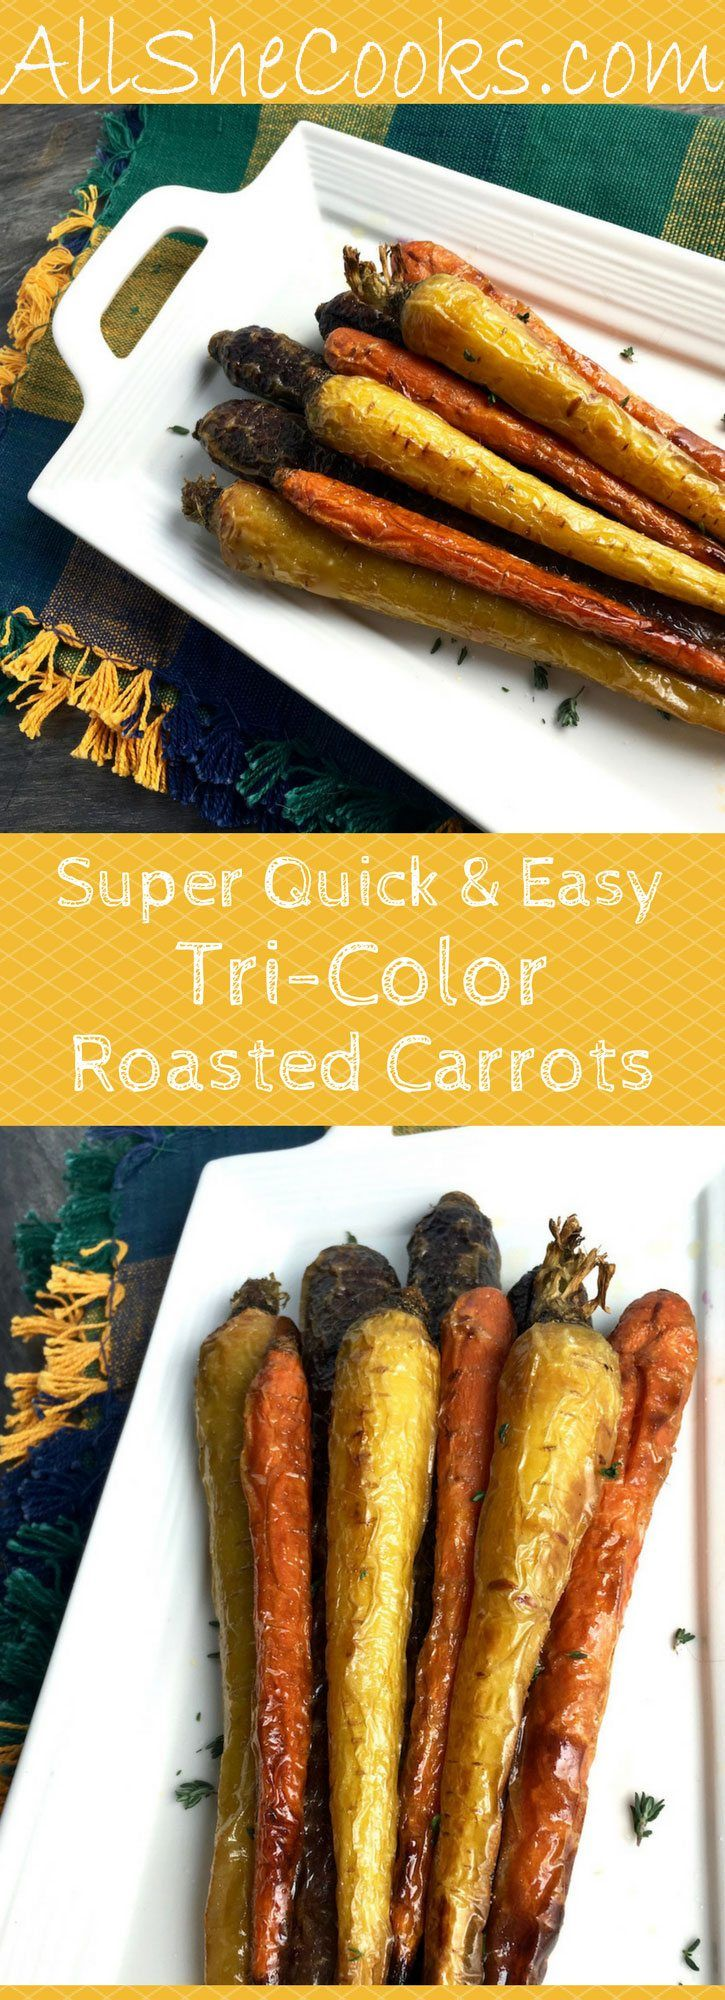 How to make roasted carrots for a healthy meal with superfood power. Carrots are a great diet food.